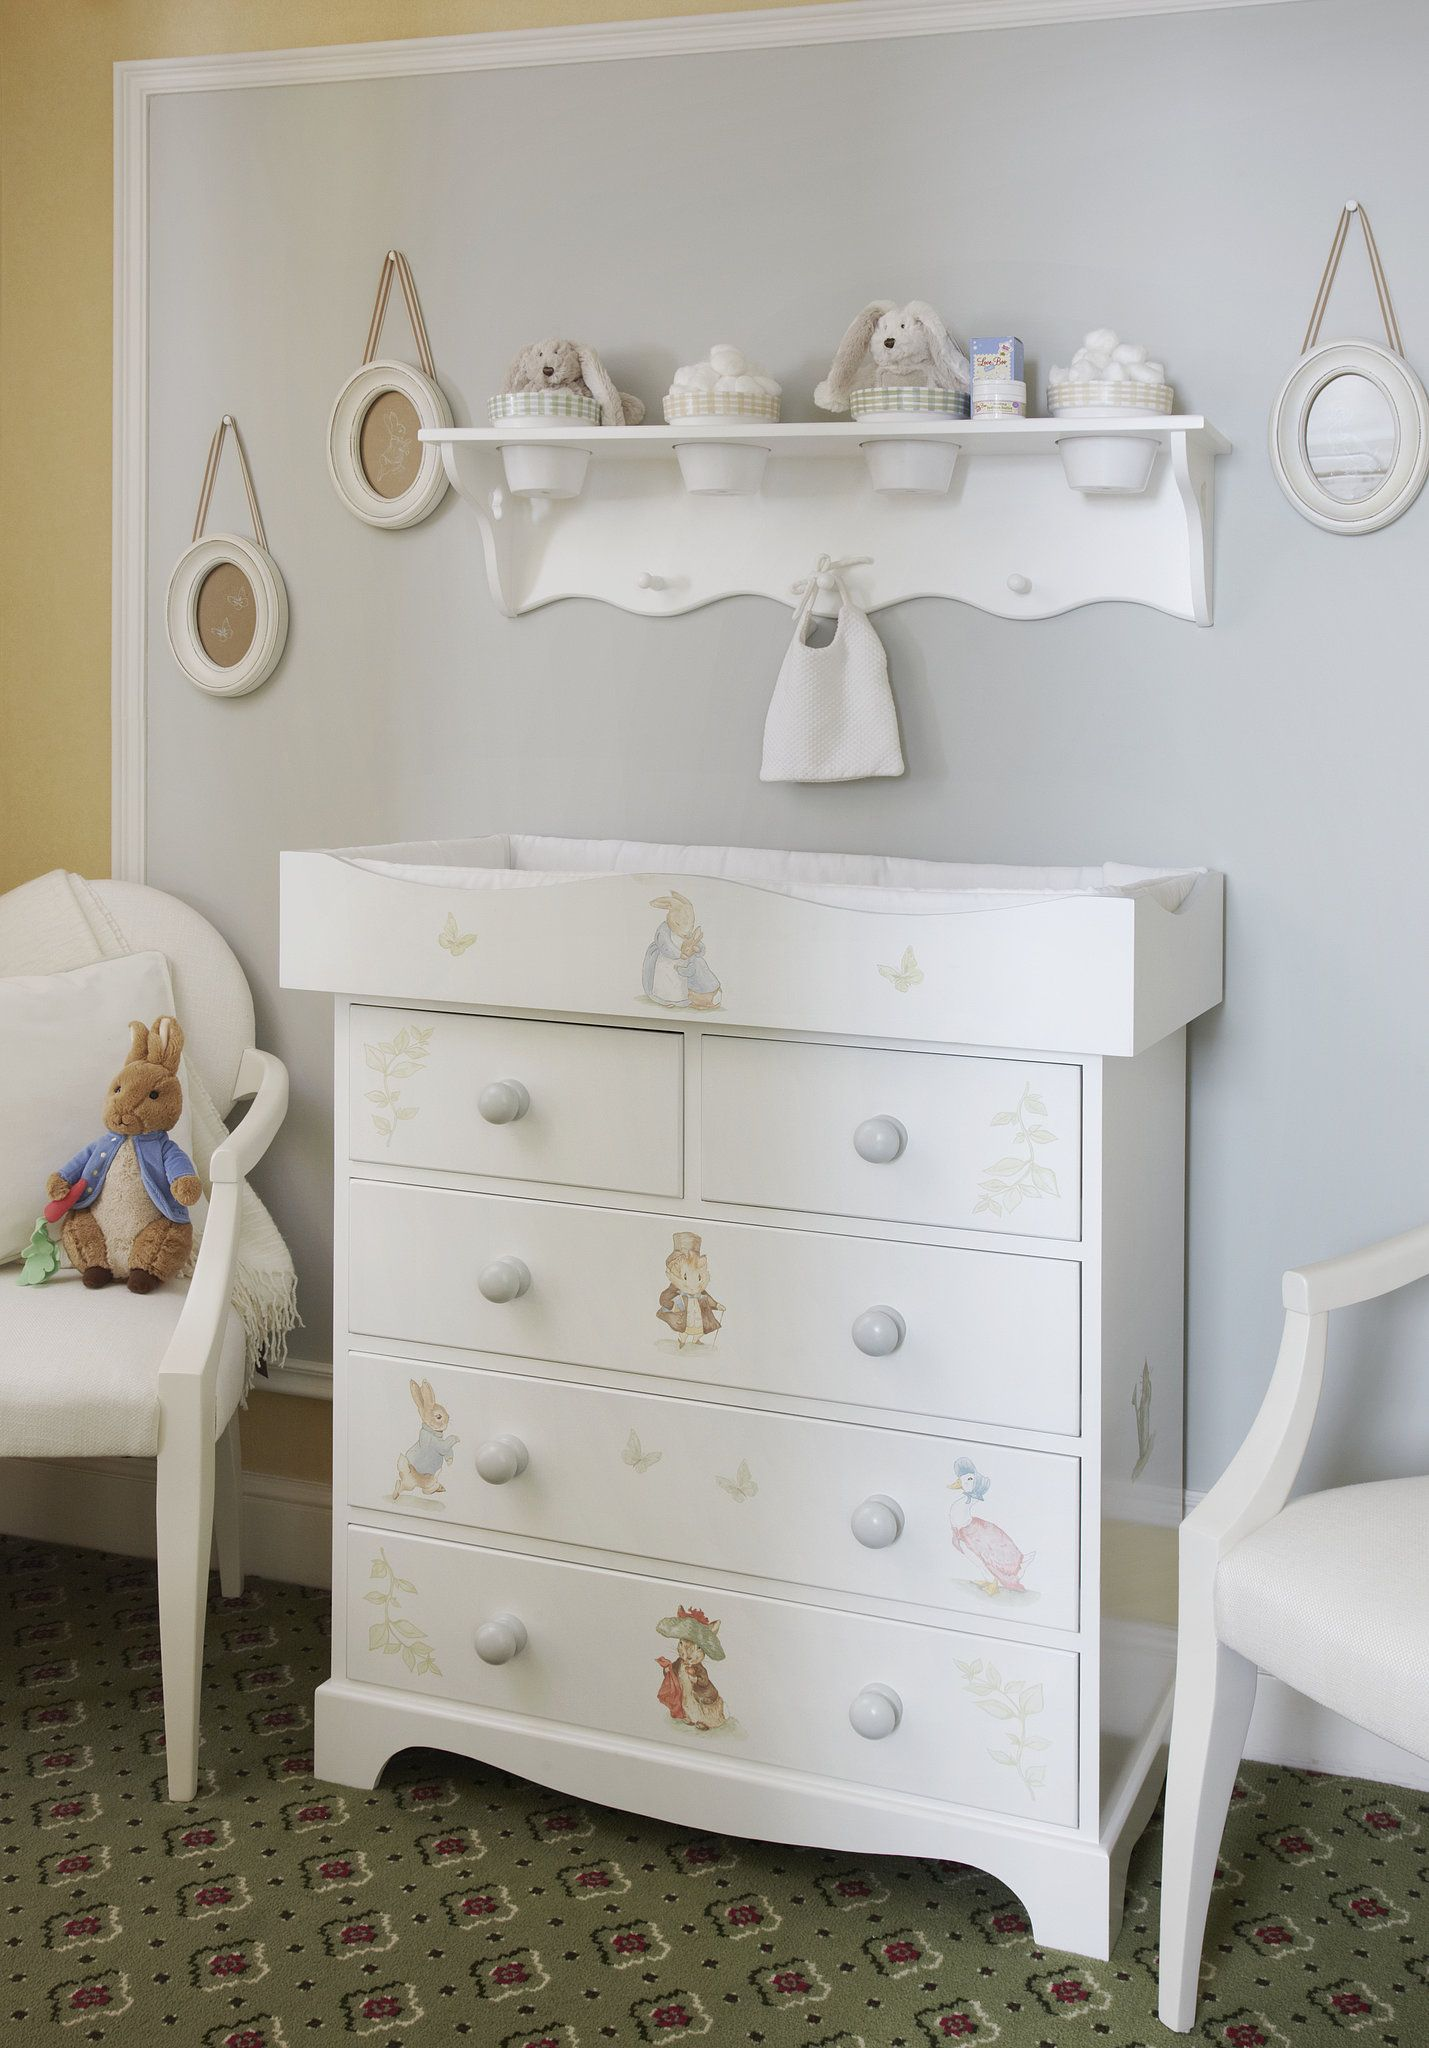 Between the bedroom and the bathroom, Dragons created a baby changing area complete with the Beatrix Potter-themed Bowfront Changer ($491). Source: The Grosvenor House